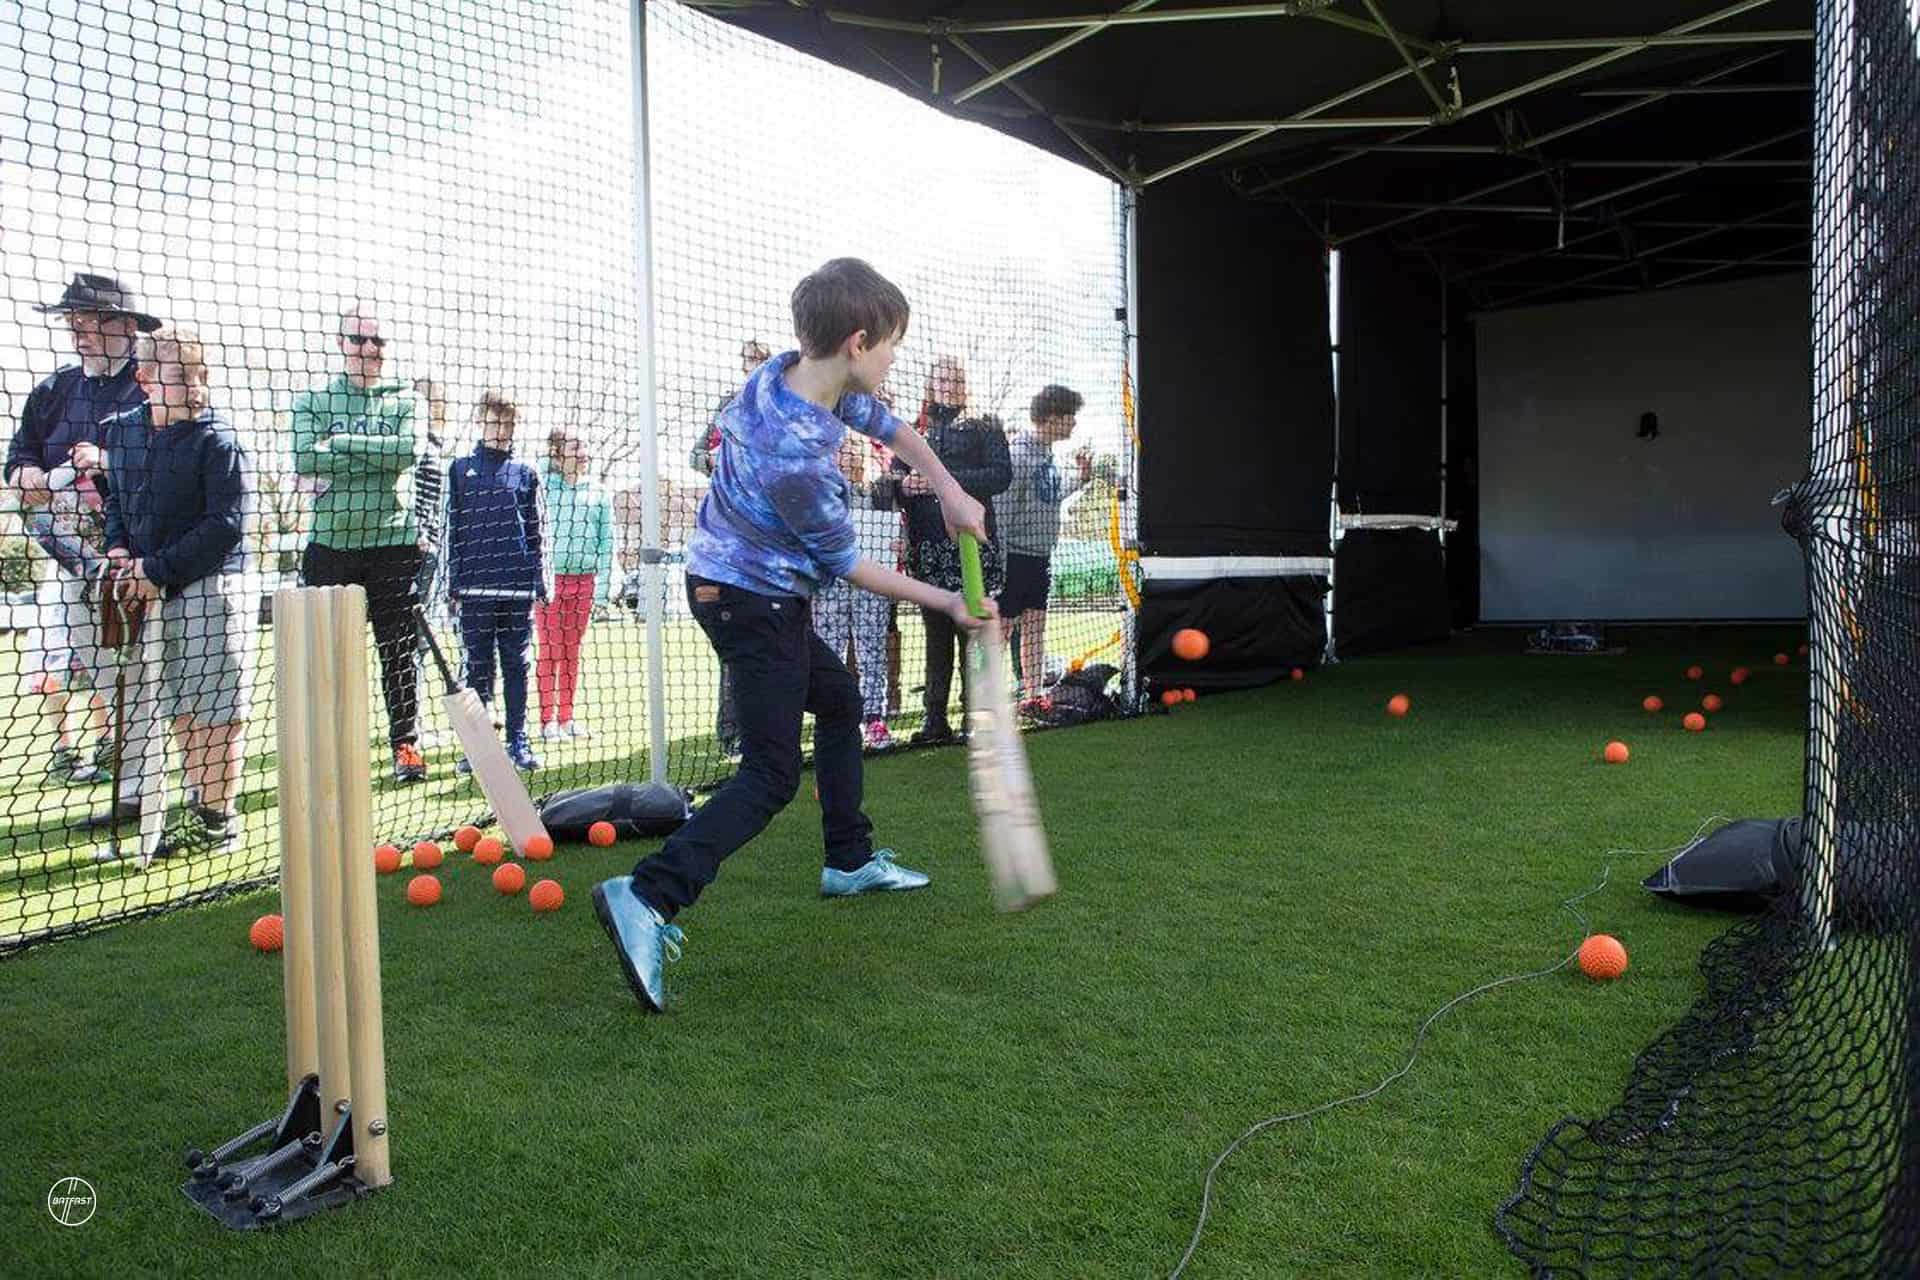 Kent County Cricket Club Batfast Outdoor Cricket Simulator